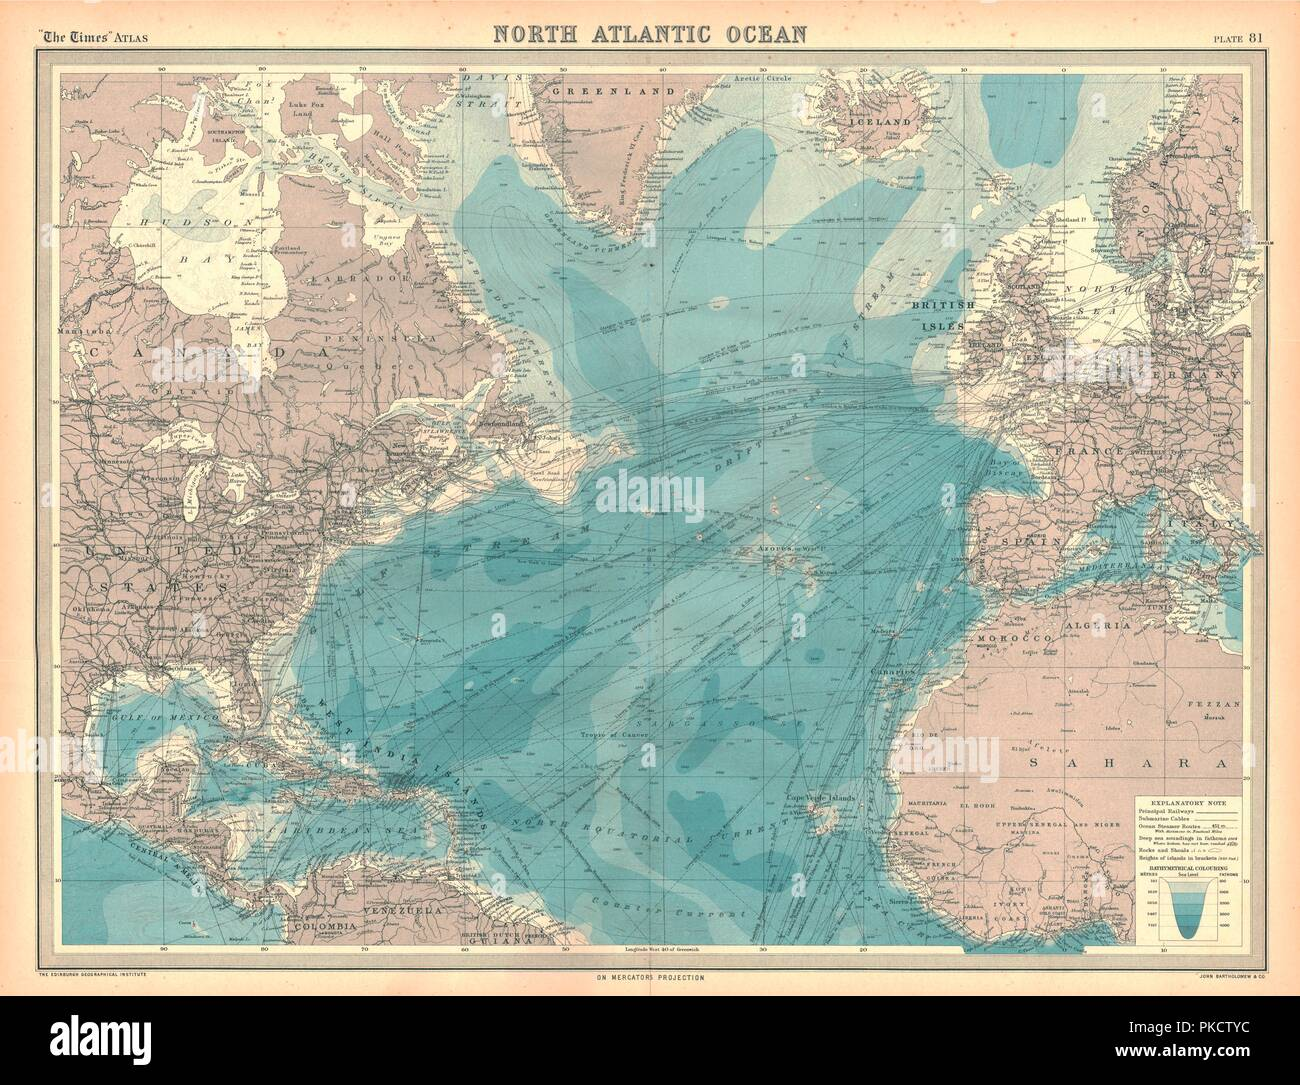 North Atlantic Ocean Map Stock Photos & North Atlantic Ocean Map ...